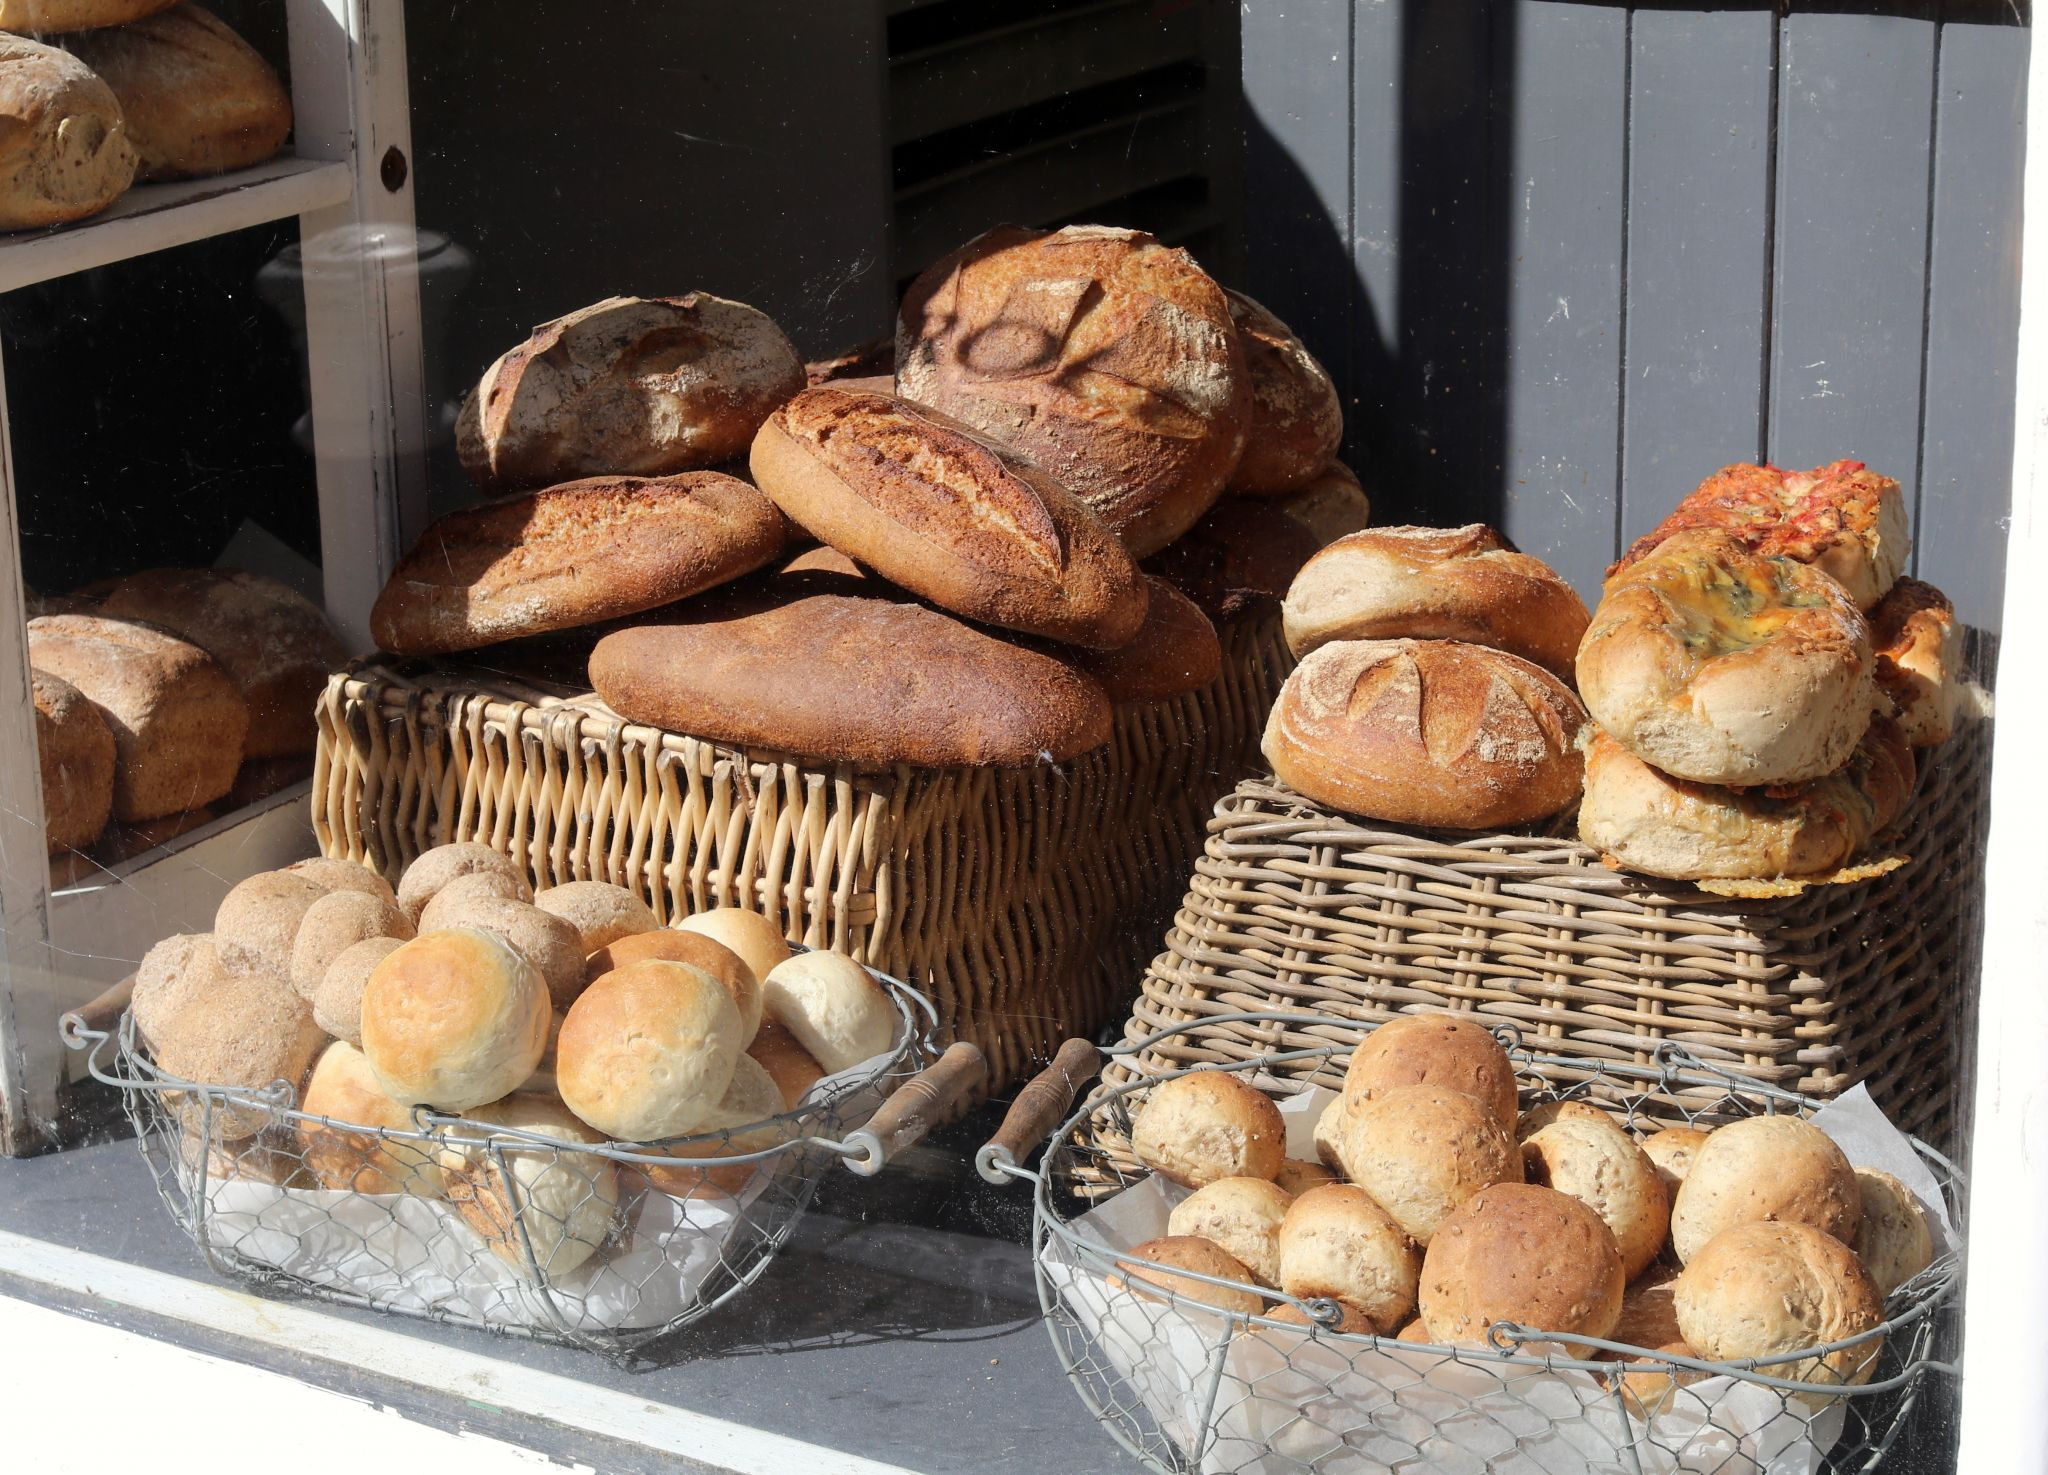 Sherborne Dorset Oxfords bakery fresh baked bread